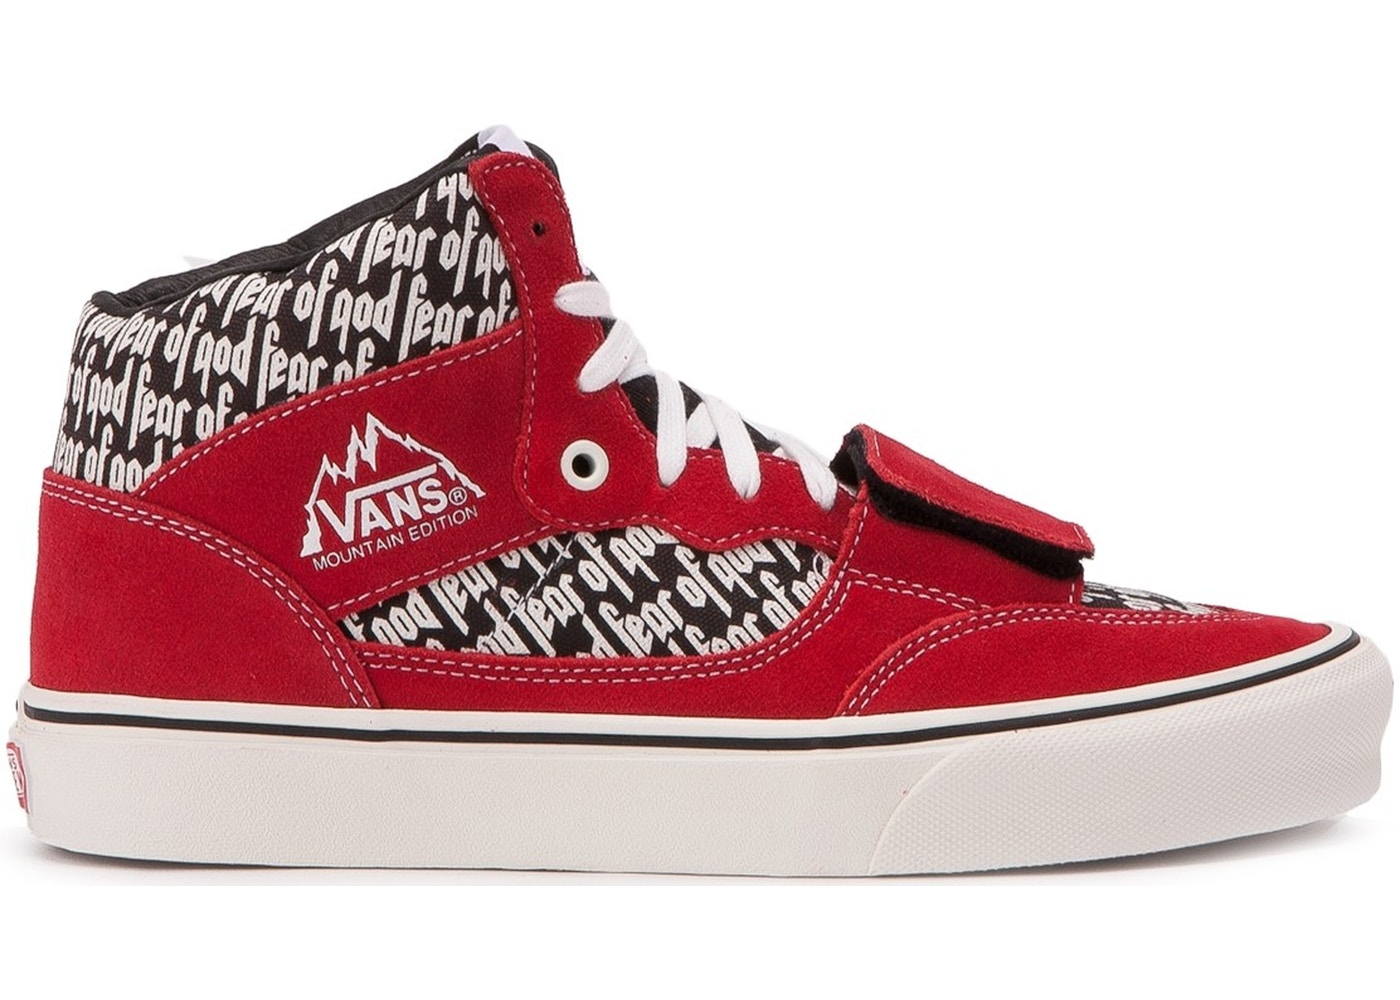 6fa5ac1e59 Vans Mountain Edition Fear of God Red - VN0A3MQ4PQP